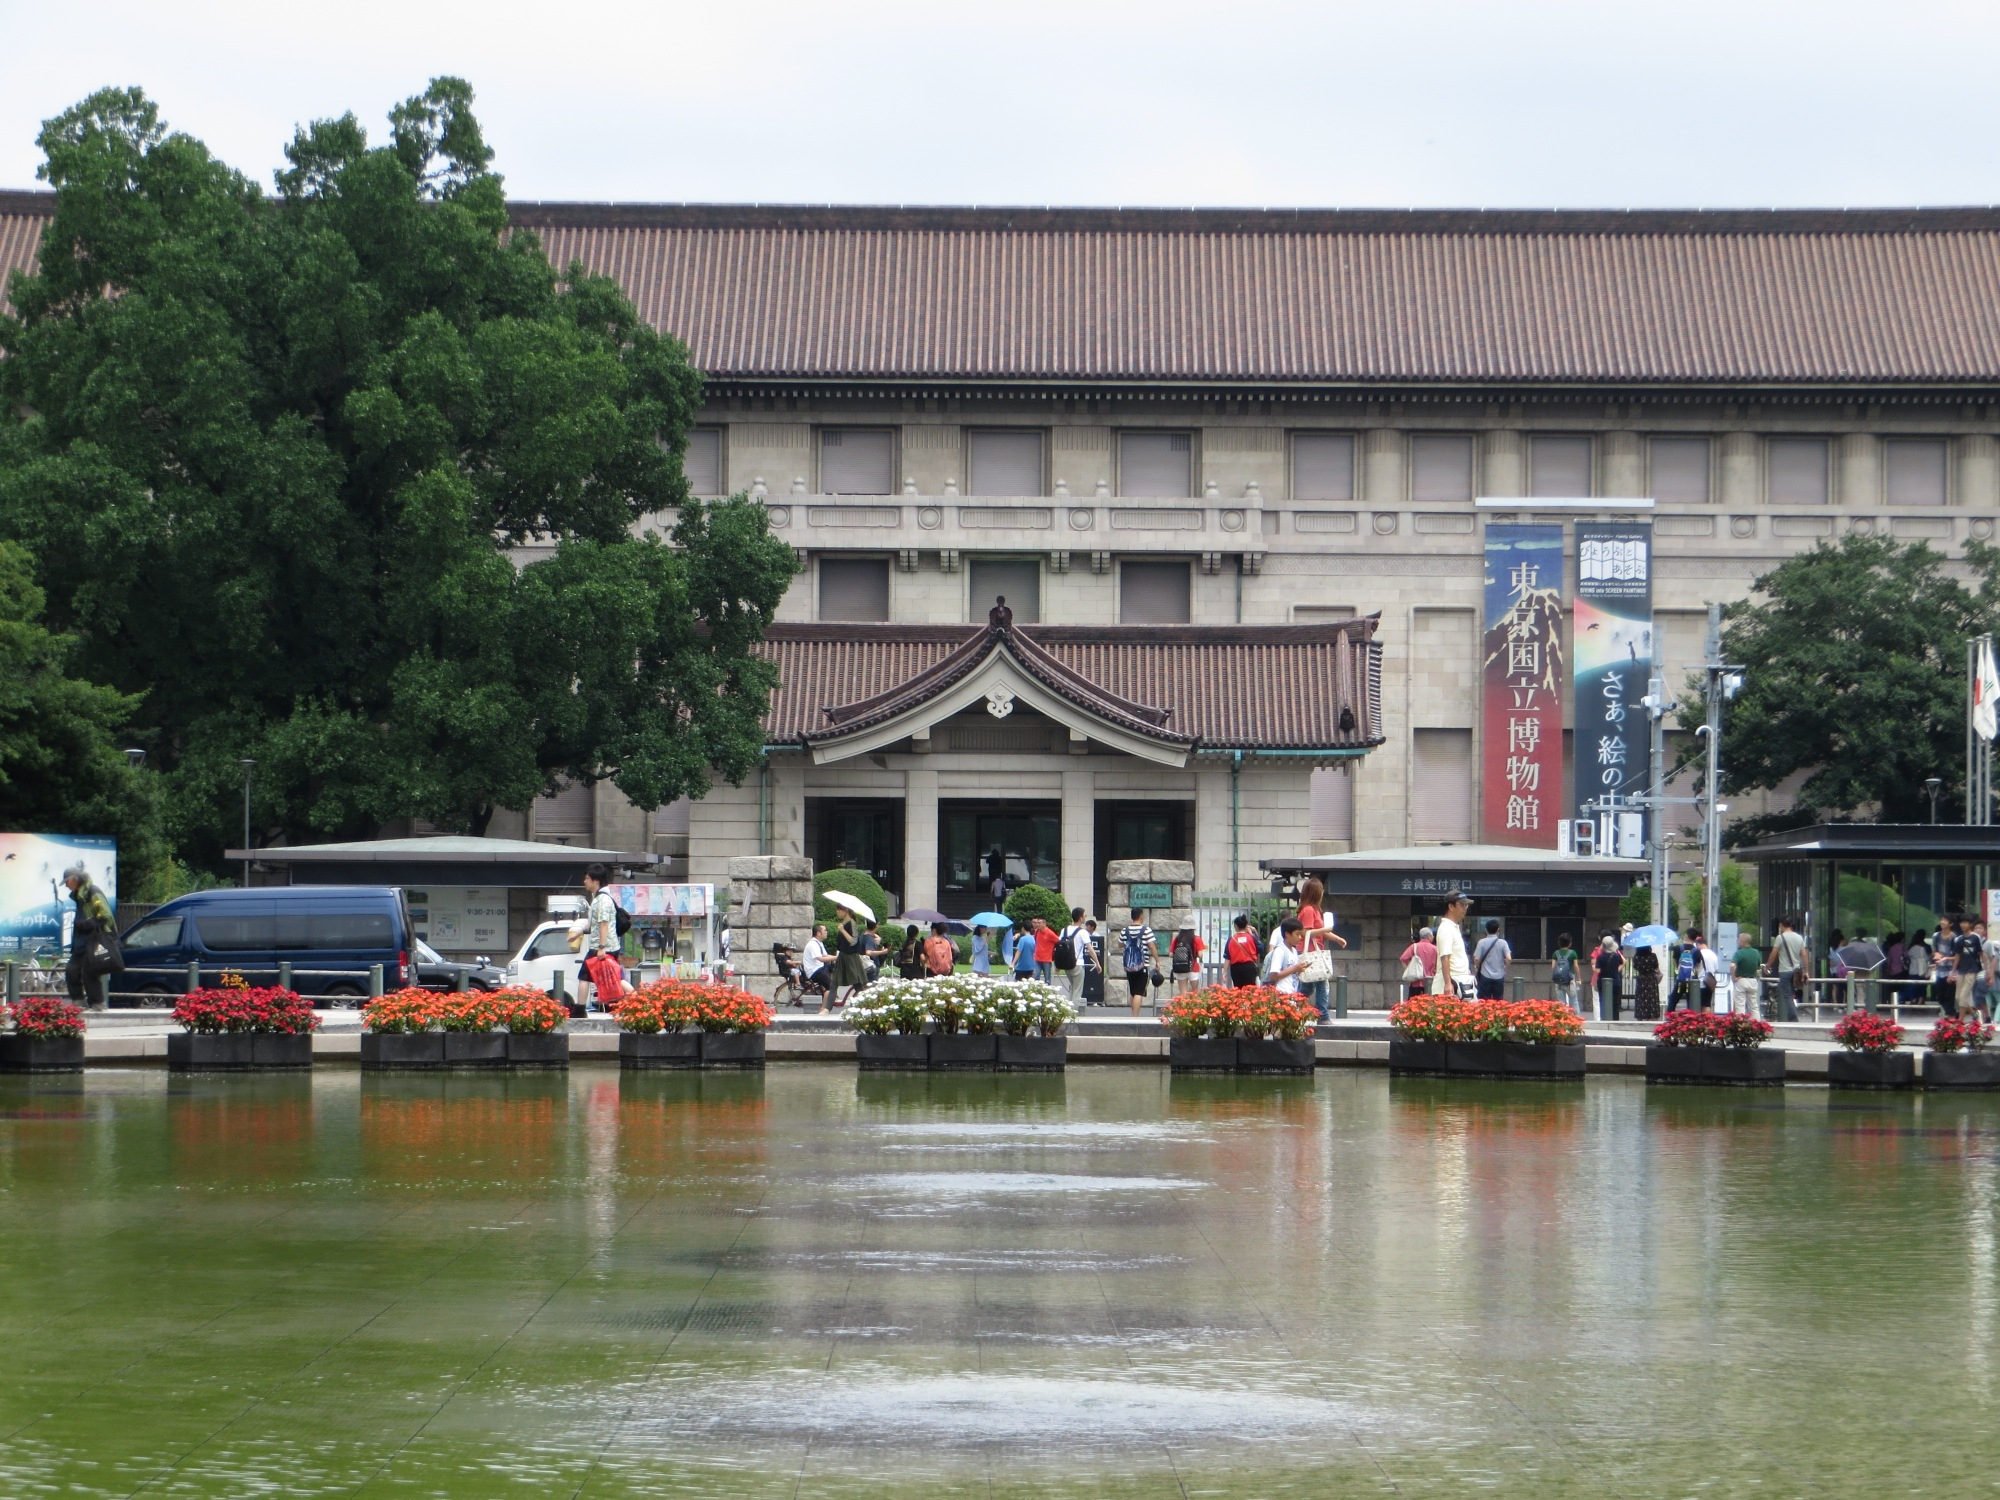 Main building of the museum